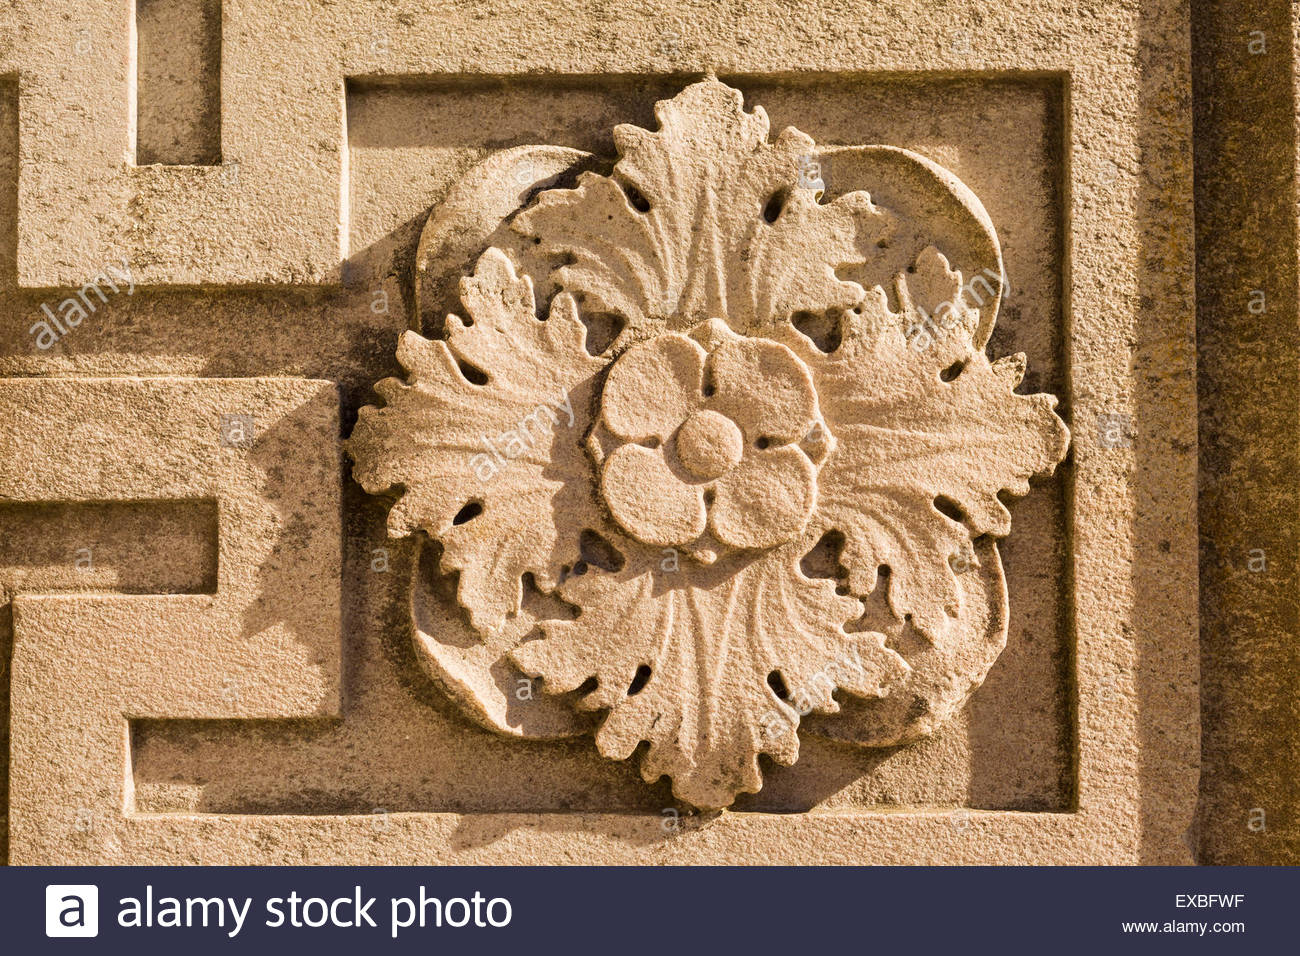 Rosette on a meander or Greek key design saved from demolished buildings relocated to The Guild park, in Toronto - Stock Image